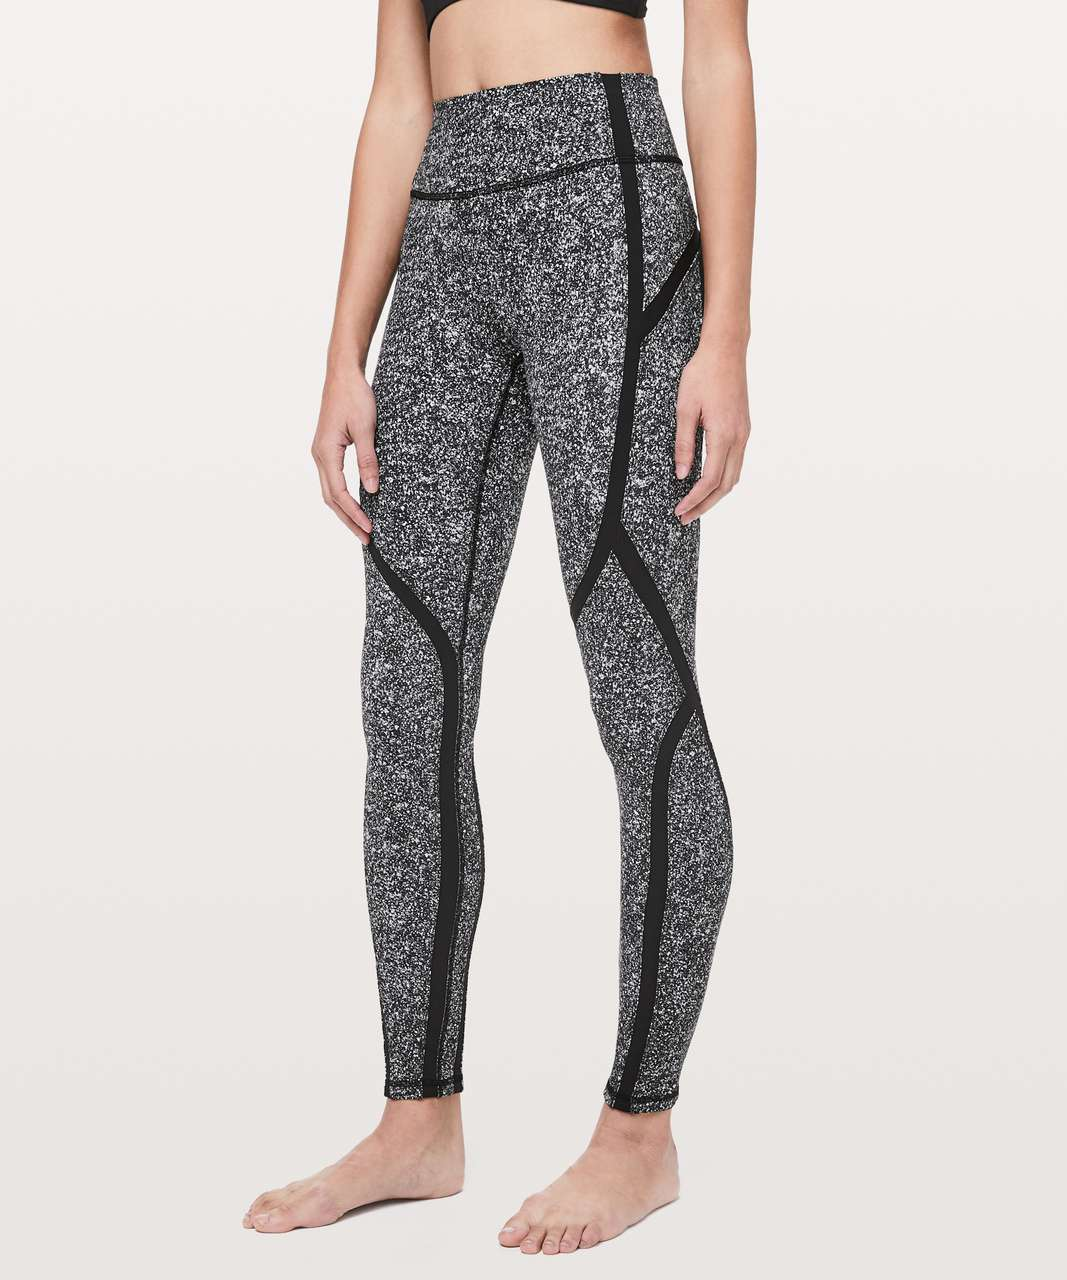 "Lululemon Sleek and Strong Tight *28"" - Diffuse Starlight Black  / Black"